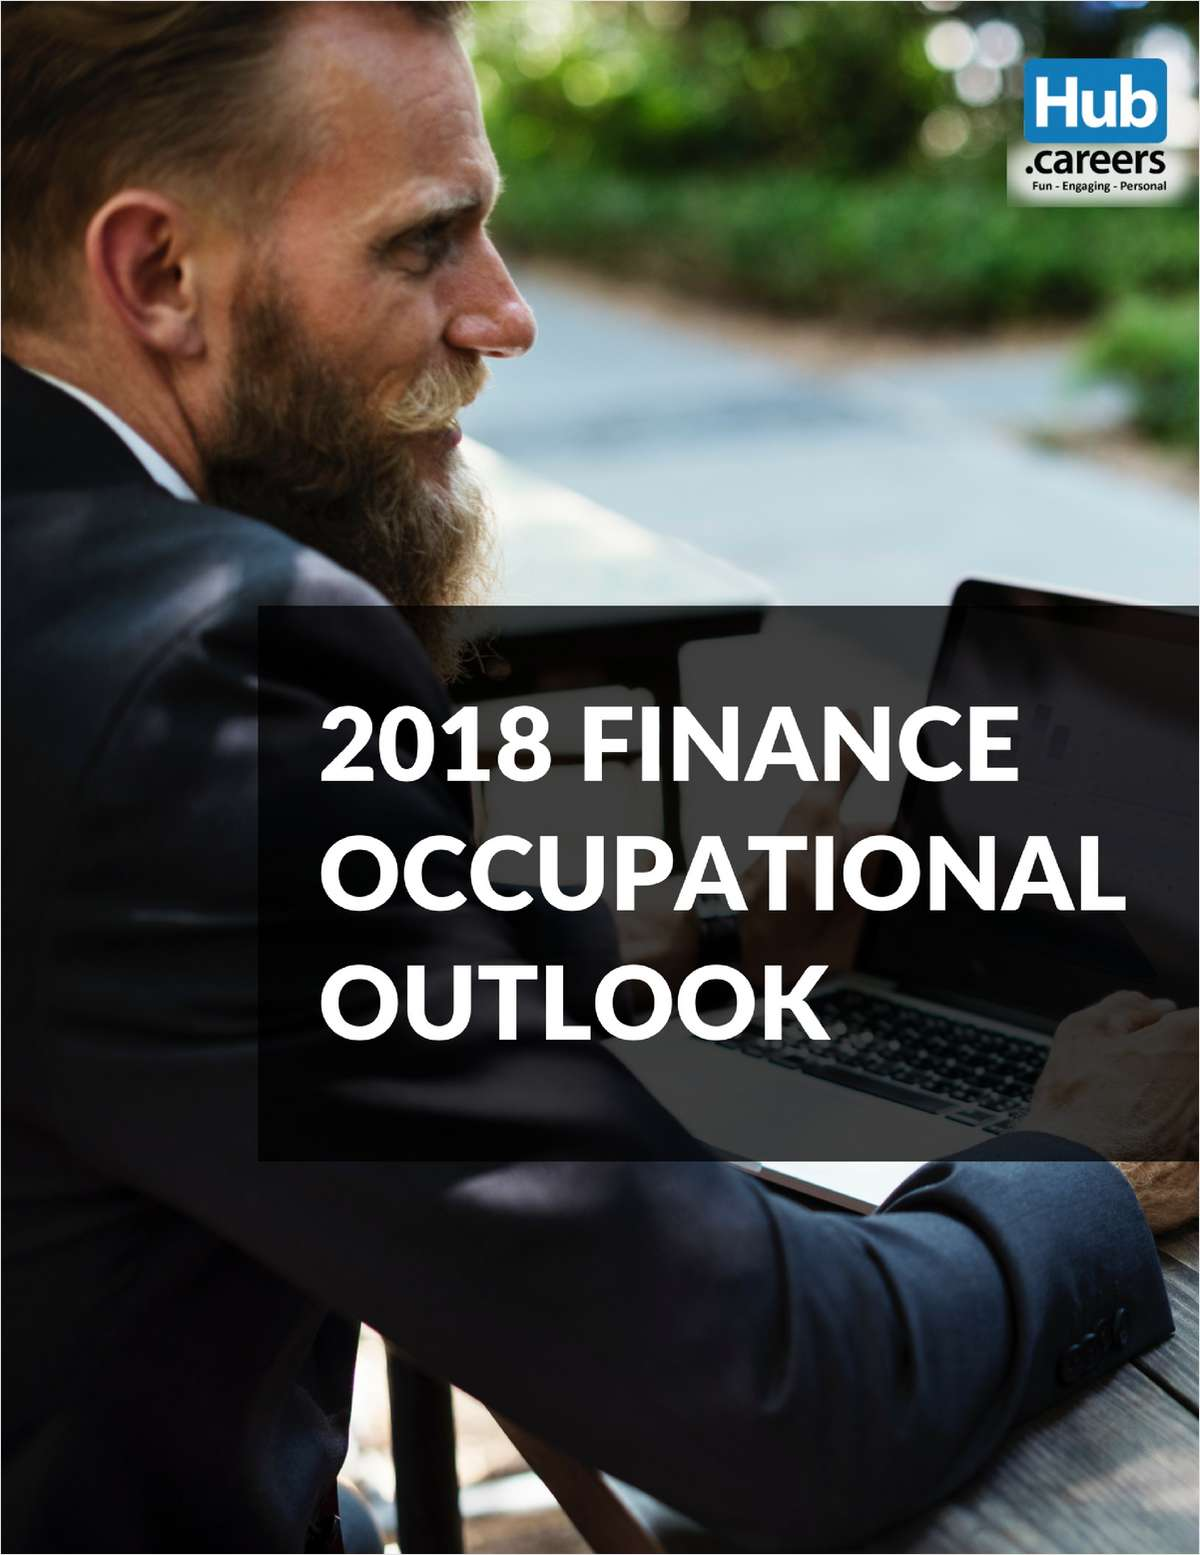 2018 Finance Occupational Outlook